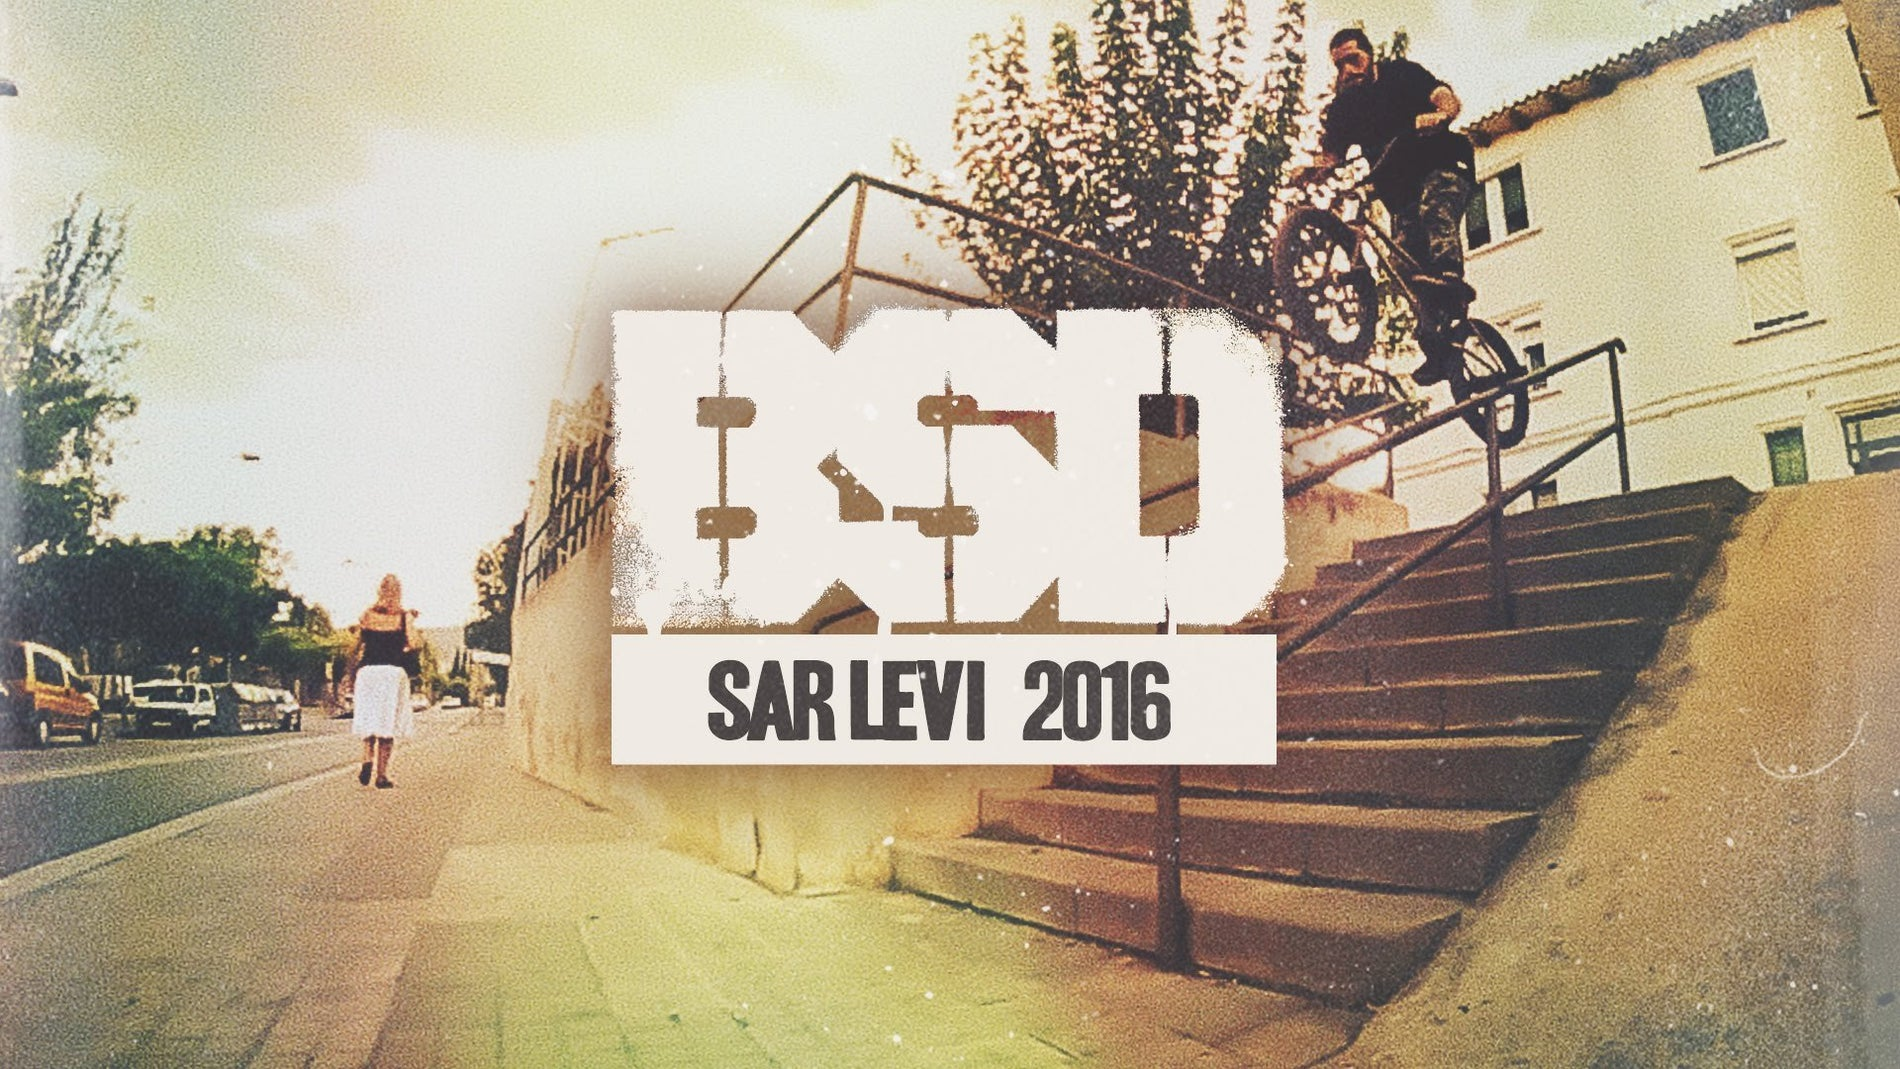 Sar Levi - Welcome to the Team